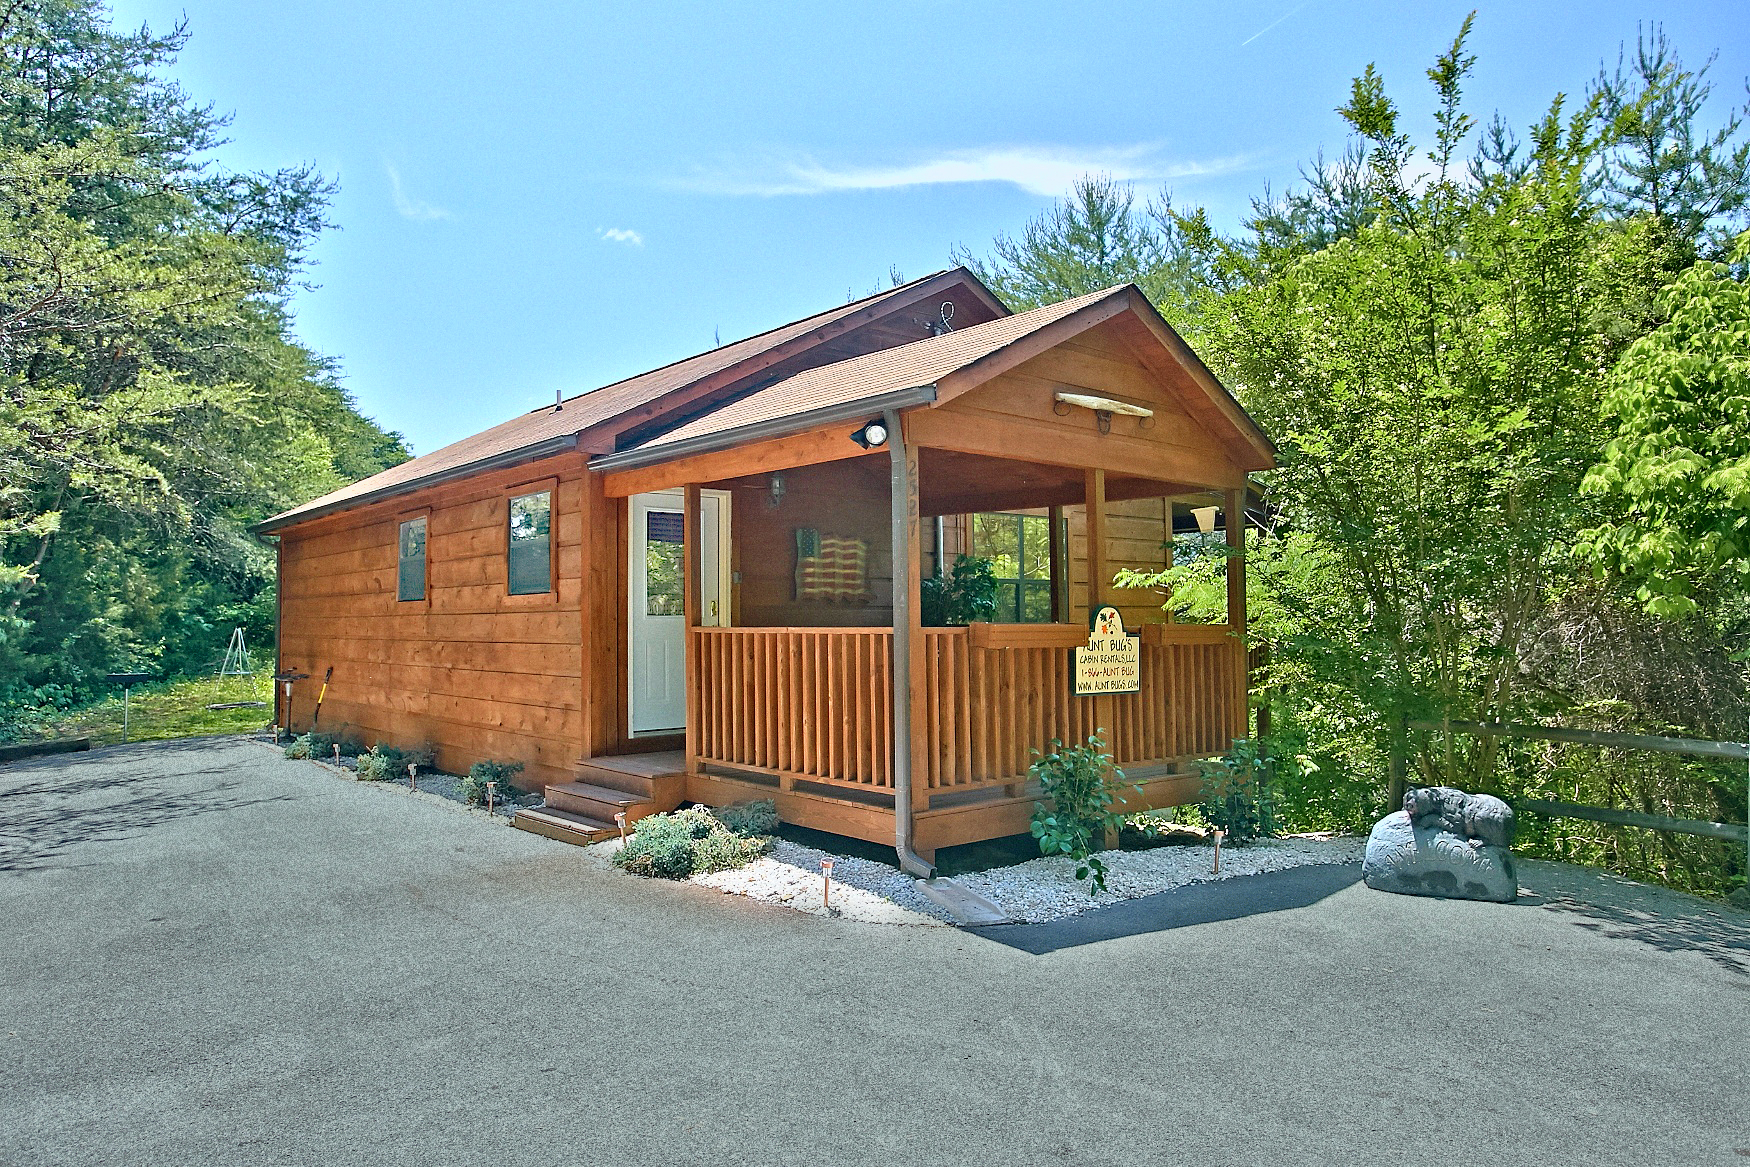 maker cabin pigeon dream sevierville forge and close secluded to in dollywood parkway bedroom rental cabins the